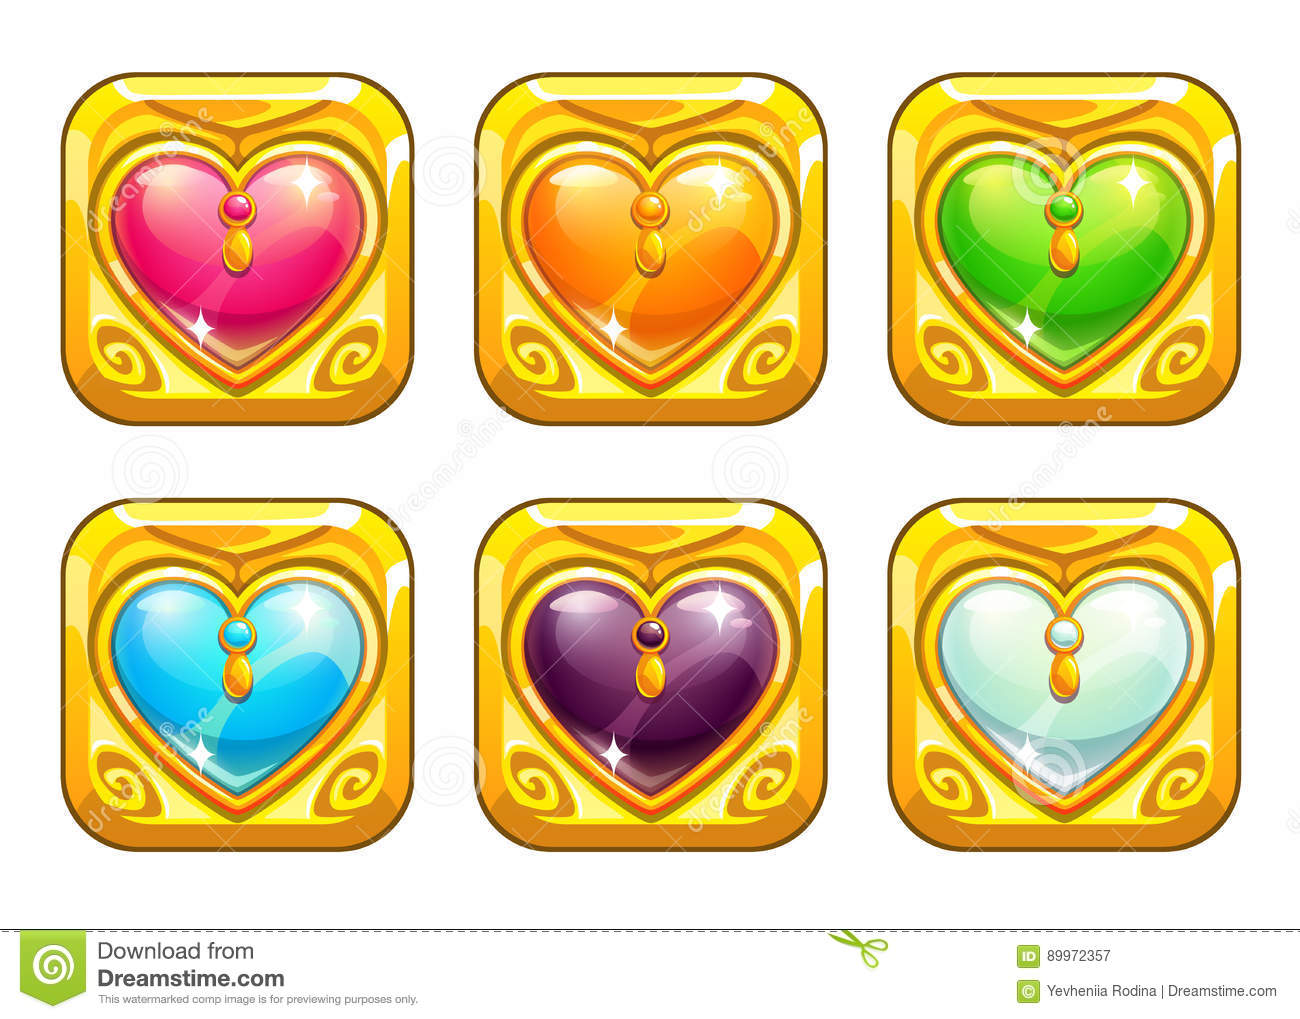 Cartoon Golden Love Amulets Stock Vector - Illustration of object